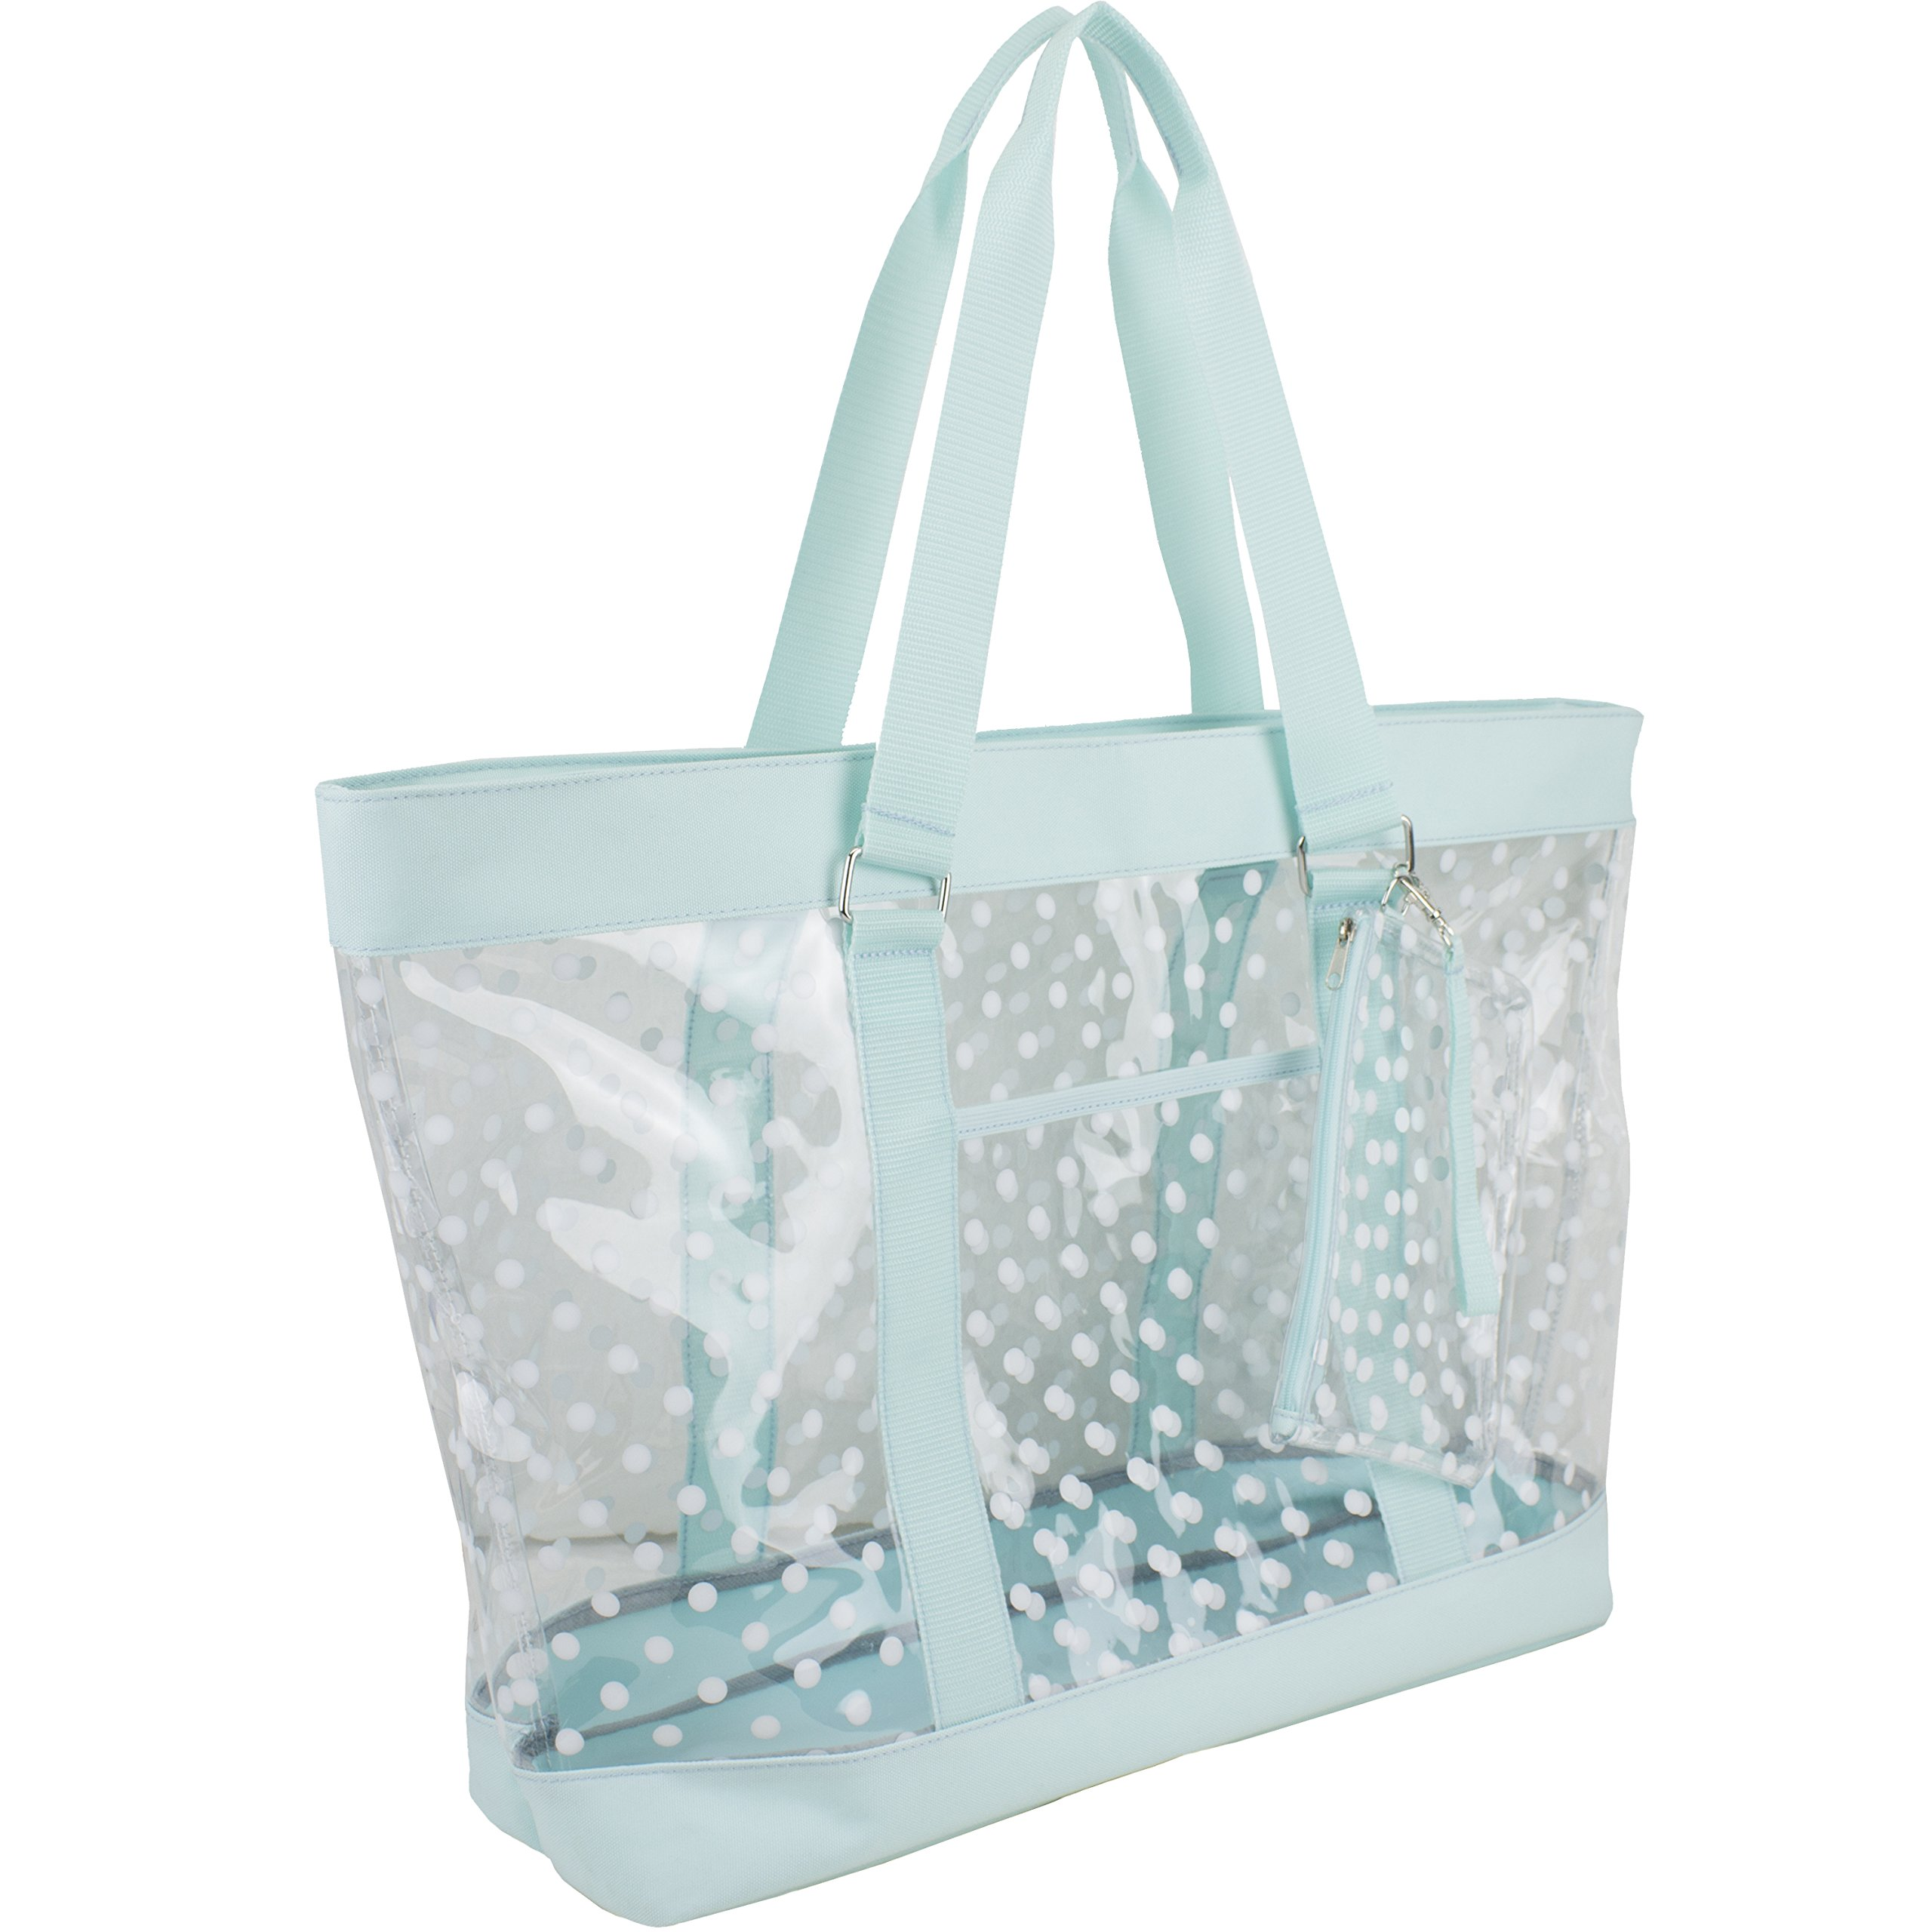 Eastsport Supreme Deluxe 100% Clear PVC Printed Large Beach Tote with Free Large Wristlet, Icy Blue with Dots